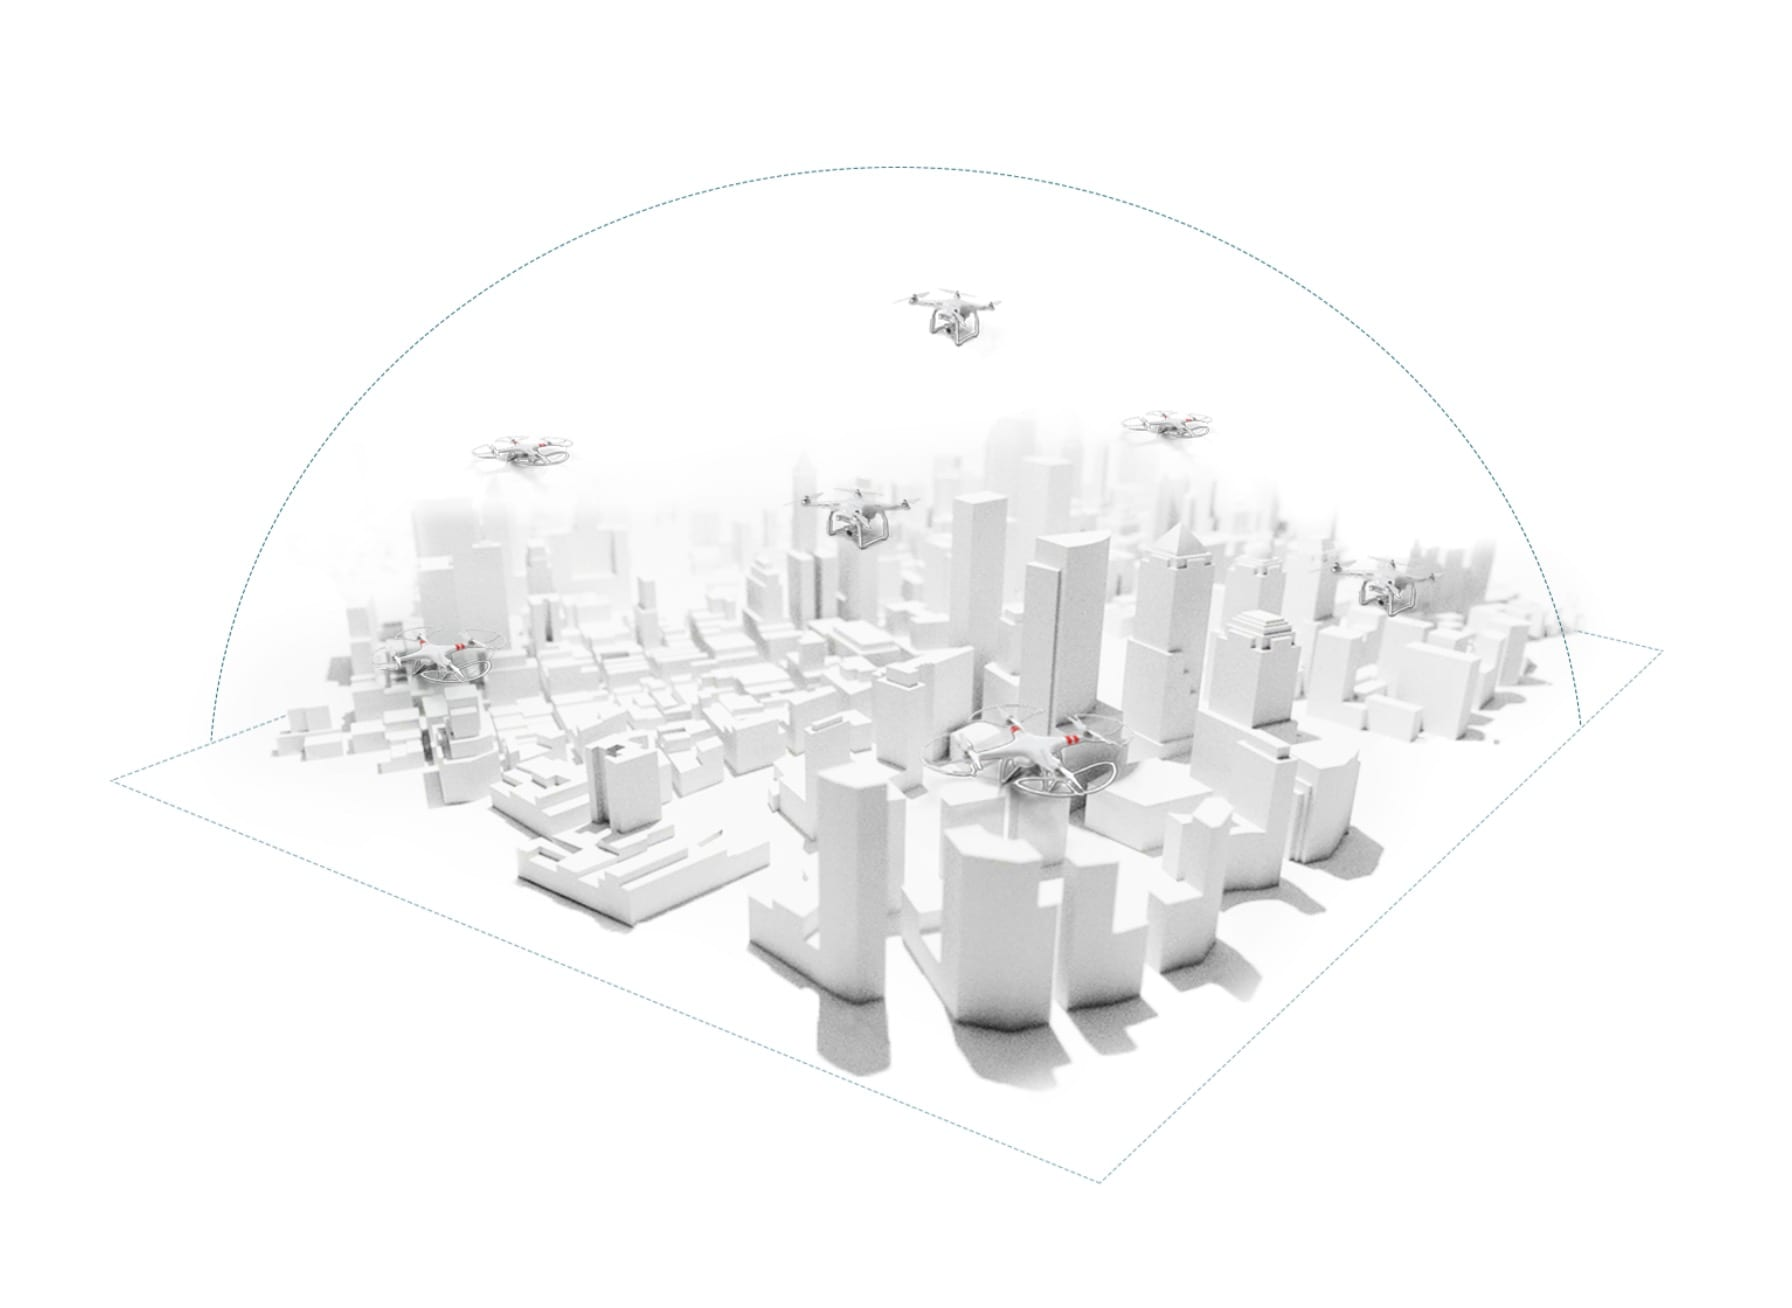 AiRXOS launches new unmanned aircraft systems solution for energy industry